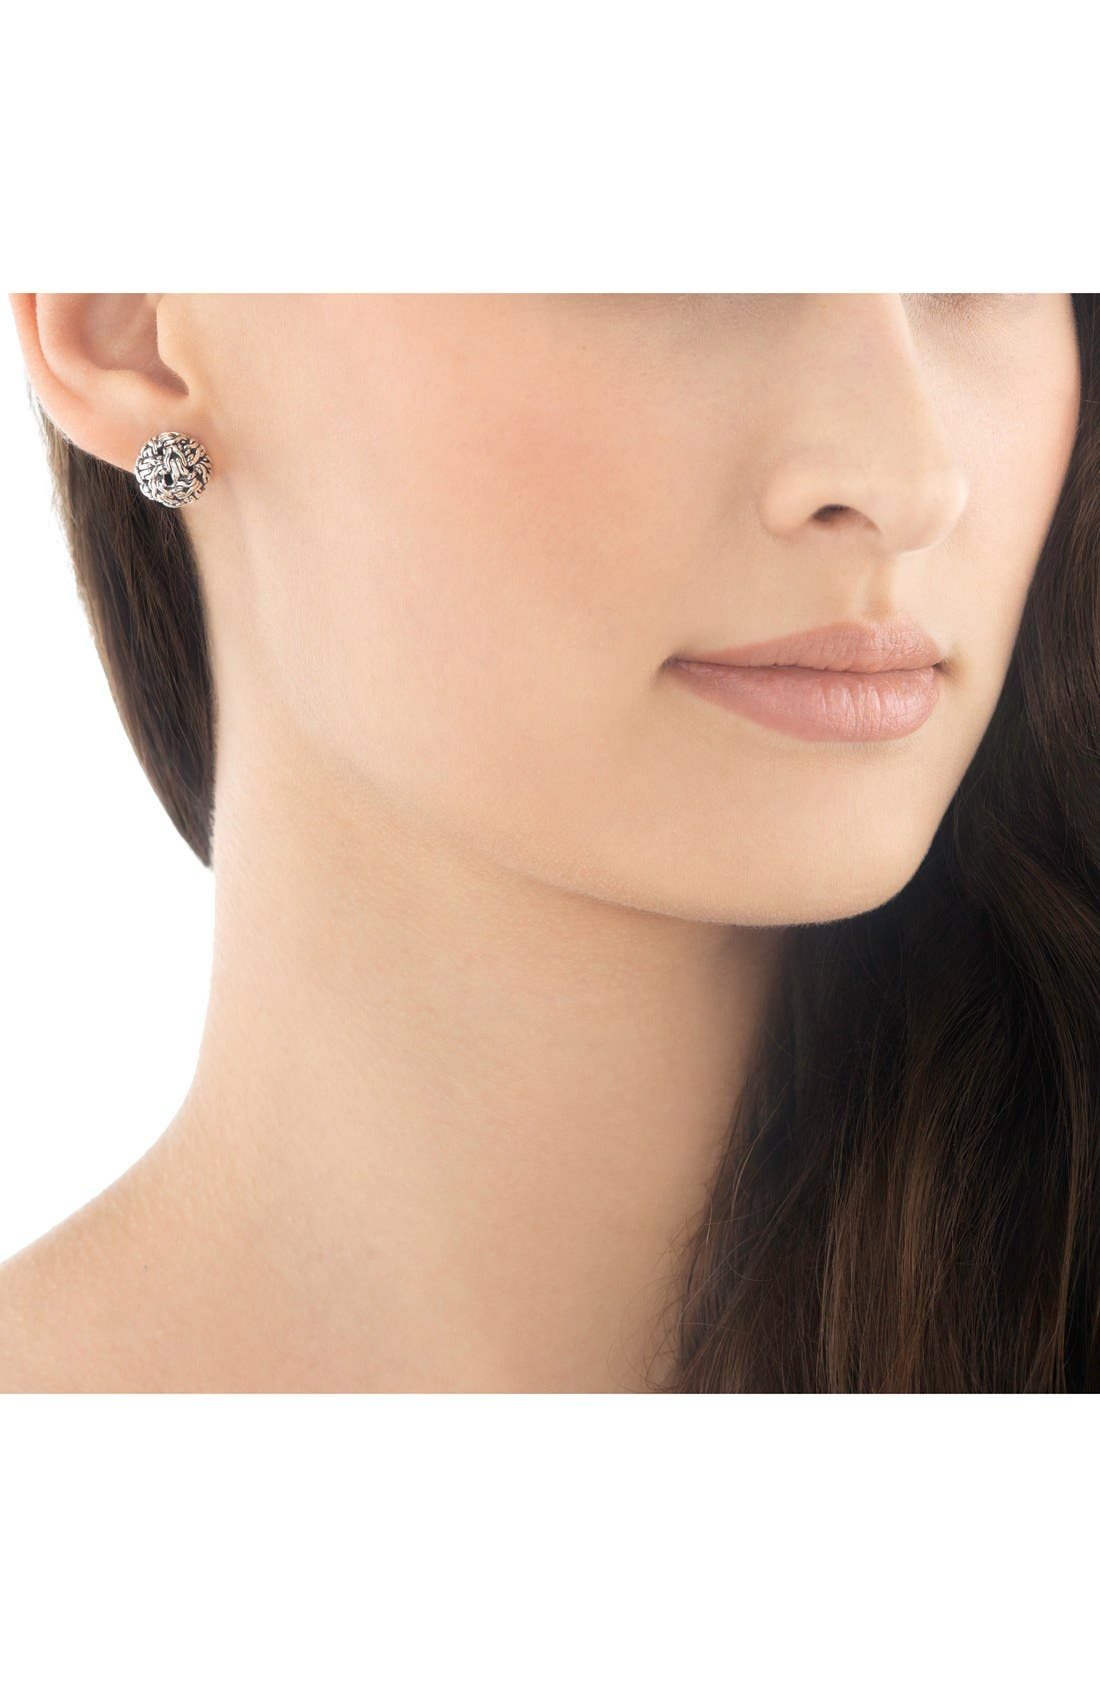 'Classic Chain' Stud Earrings,                             Alternate thumbnail 2, color,                             STERLING SILVER